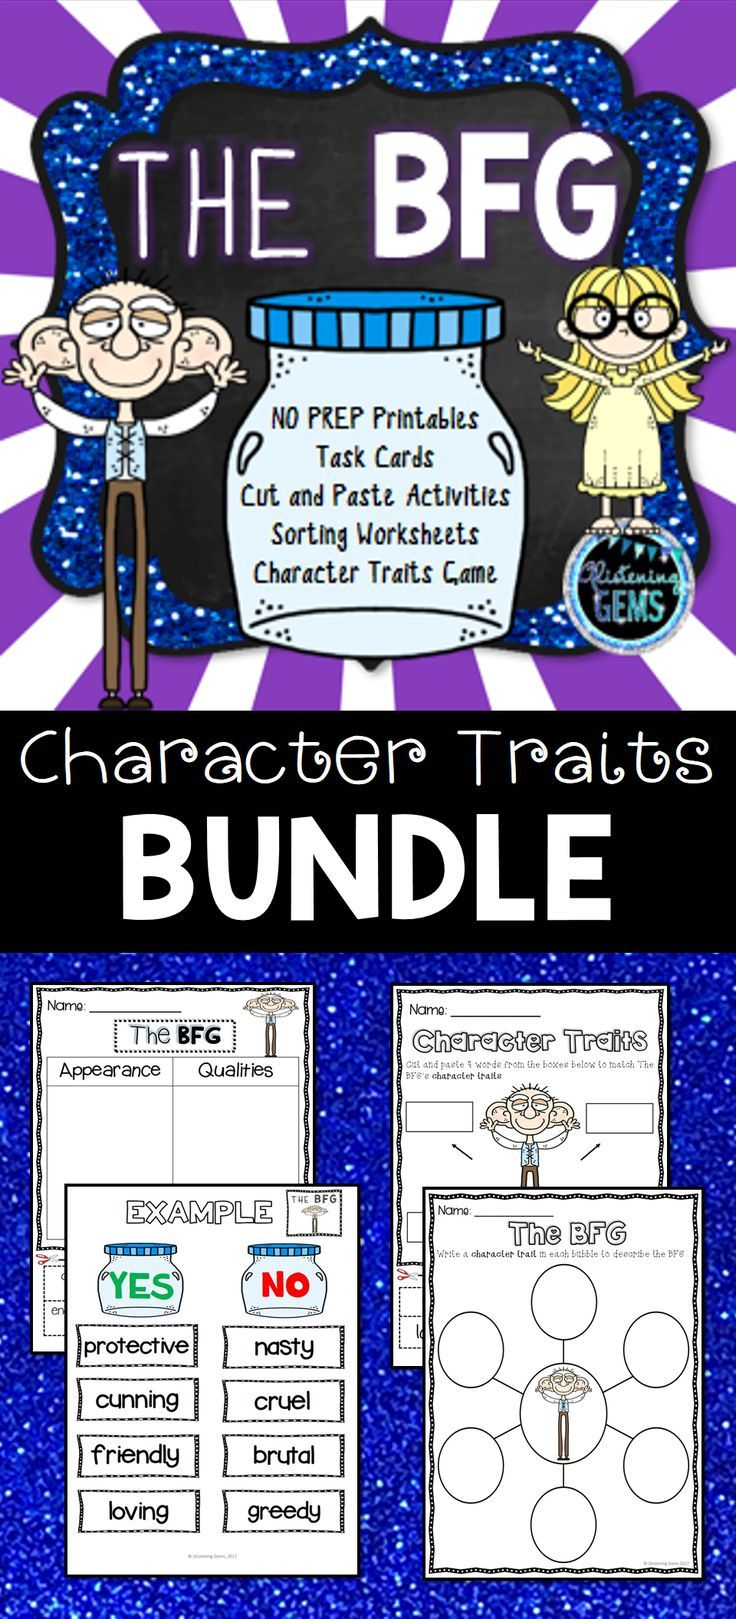 The BFG - Character Traits Bundle.  Activities include: sorting worksheets, cut and paste activities, yes/no game and task cards.